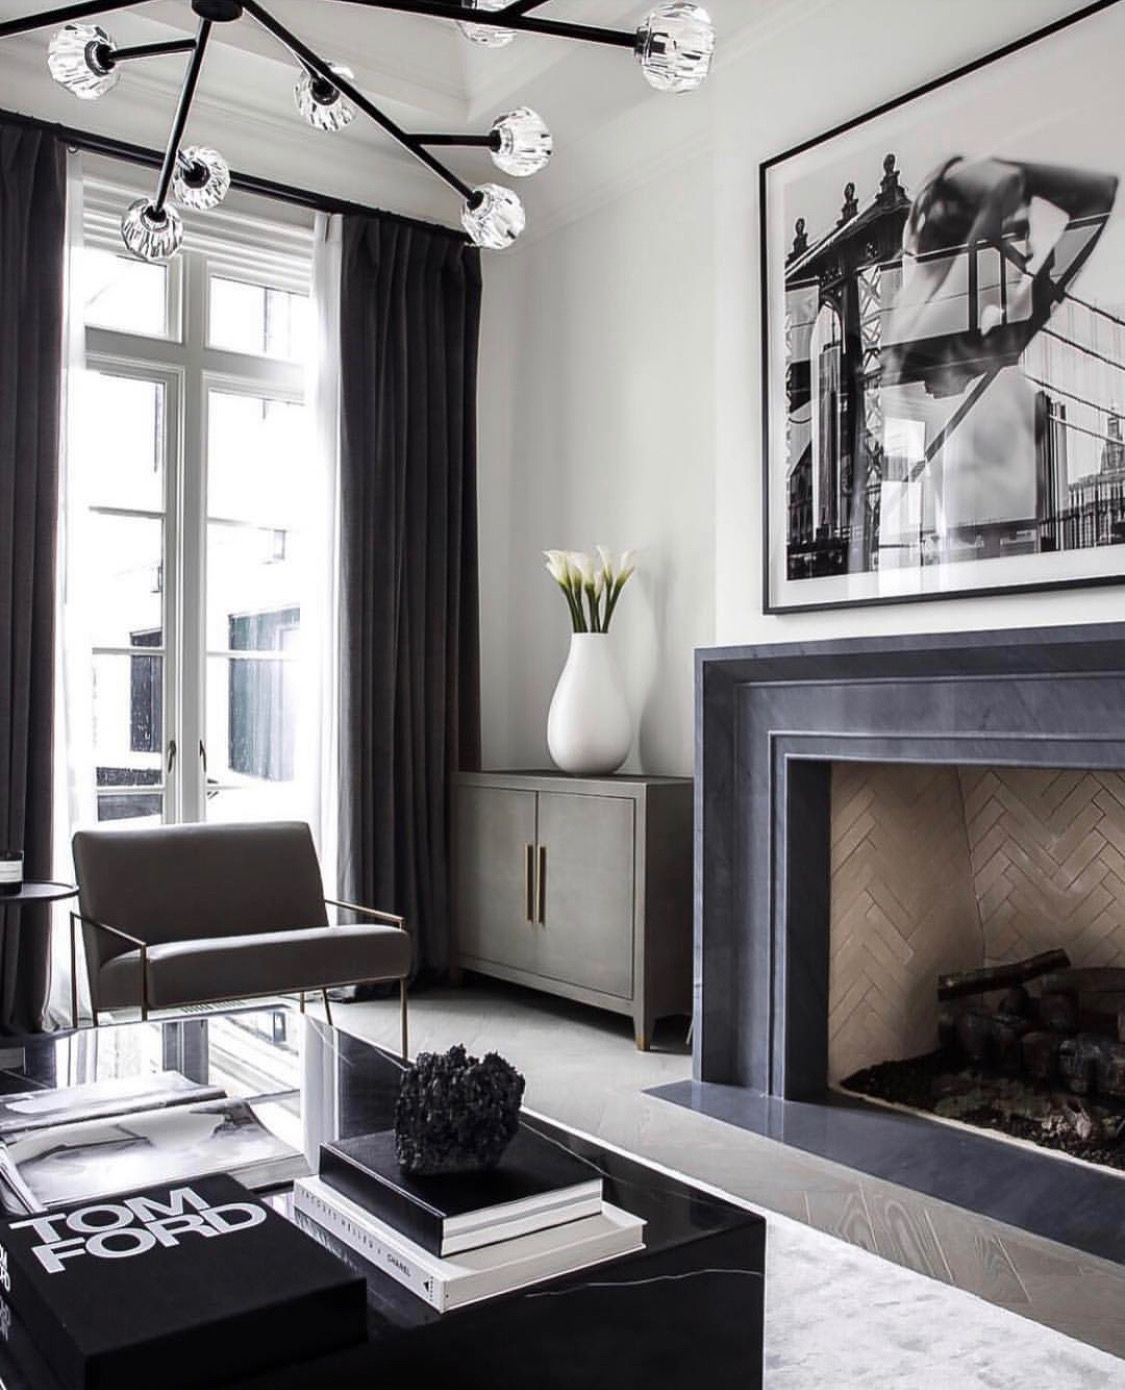 pin by liz rivera on c a s a in 2019 inspire me home decor home rh pinterest com